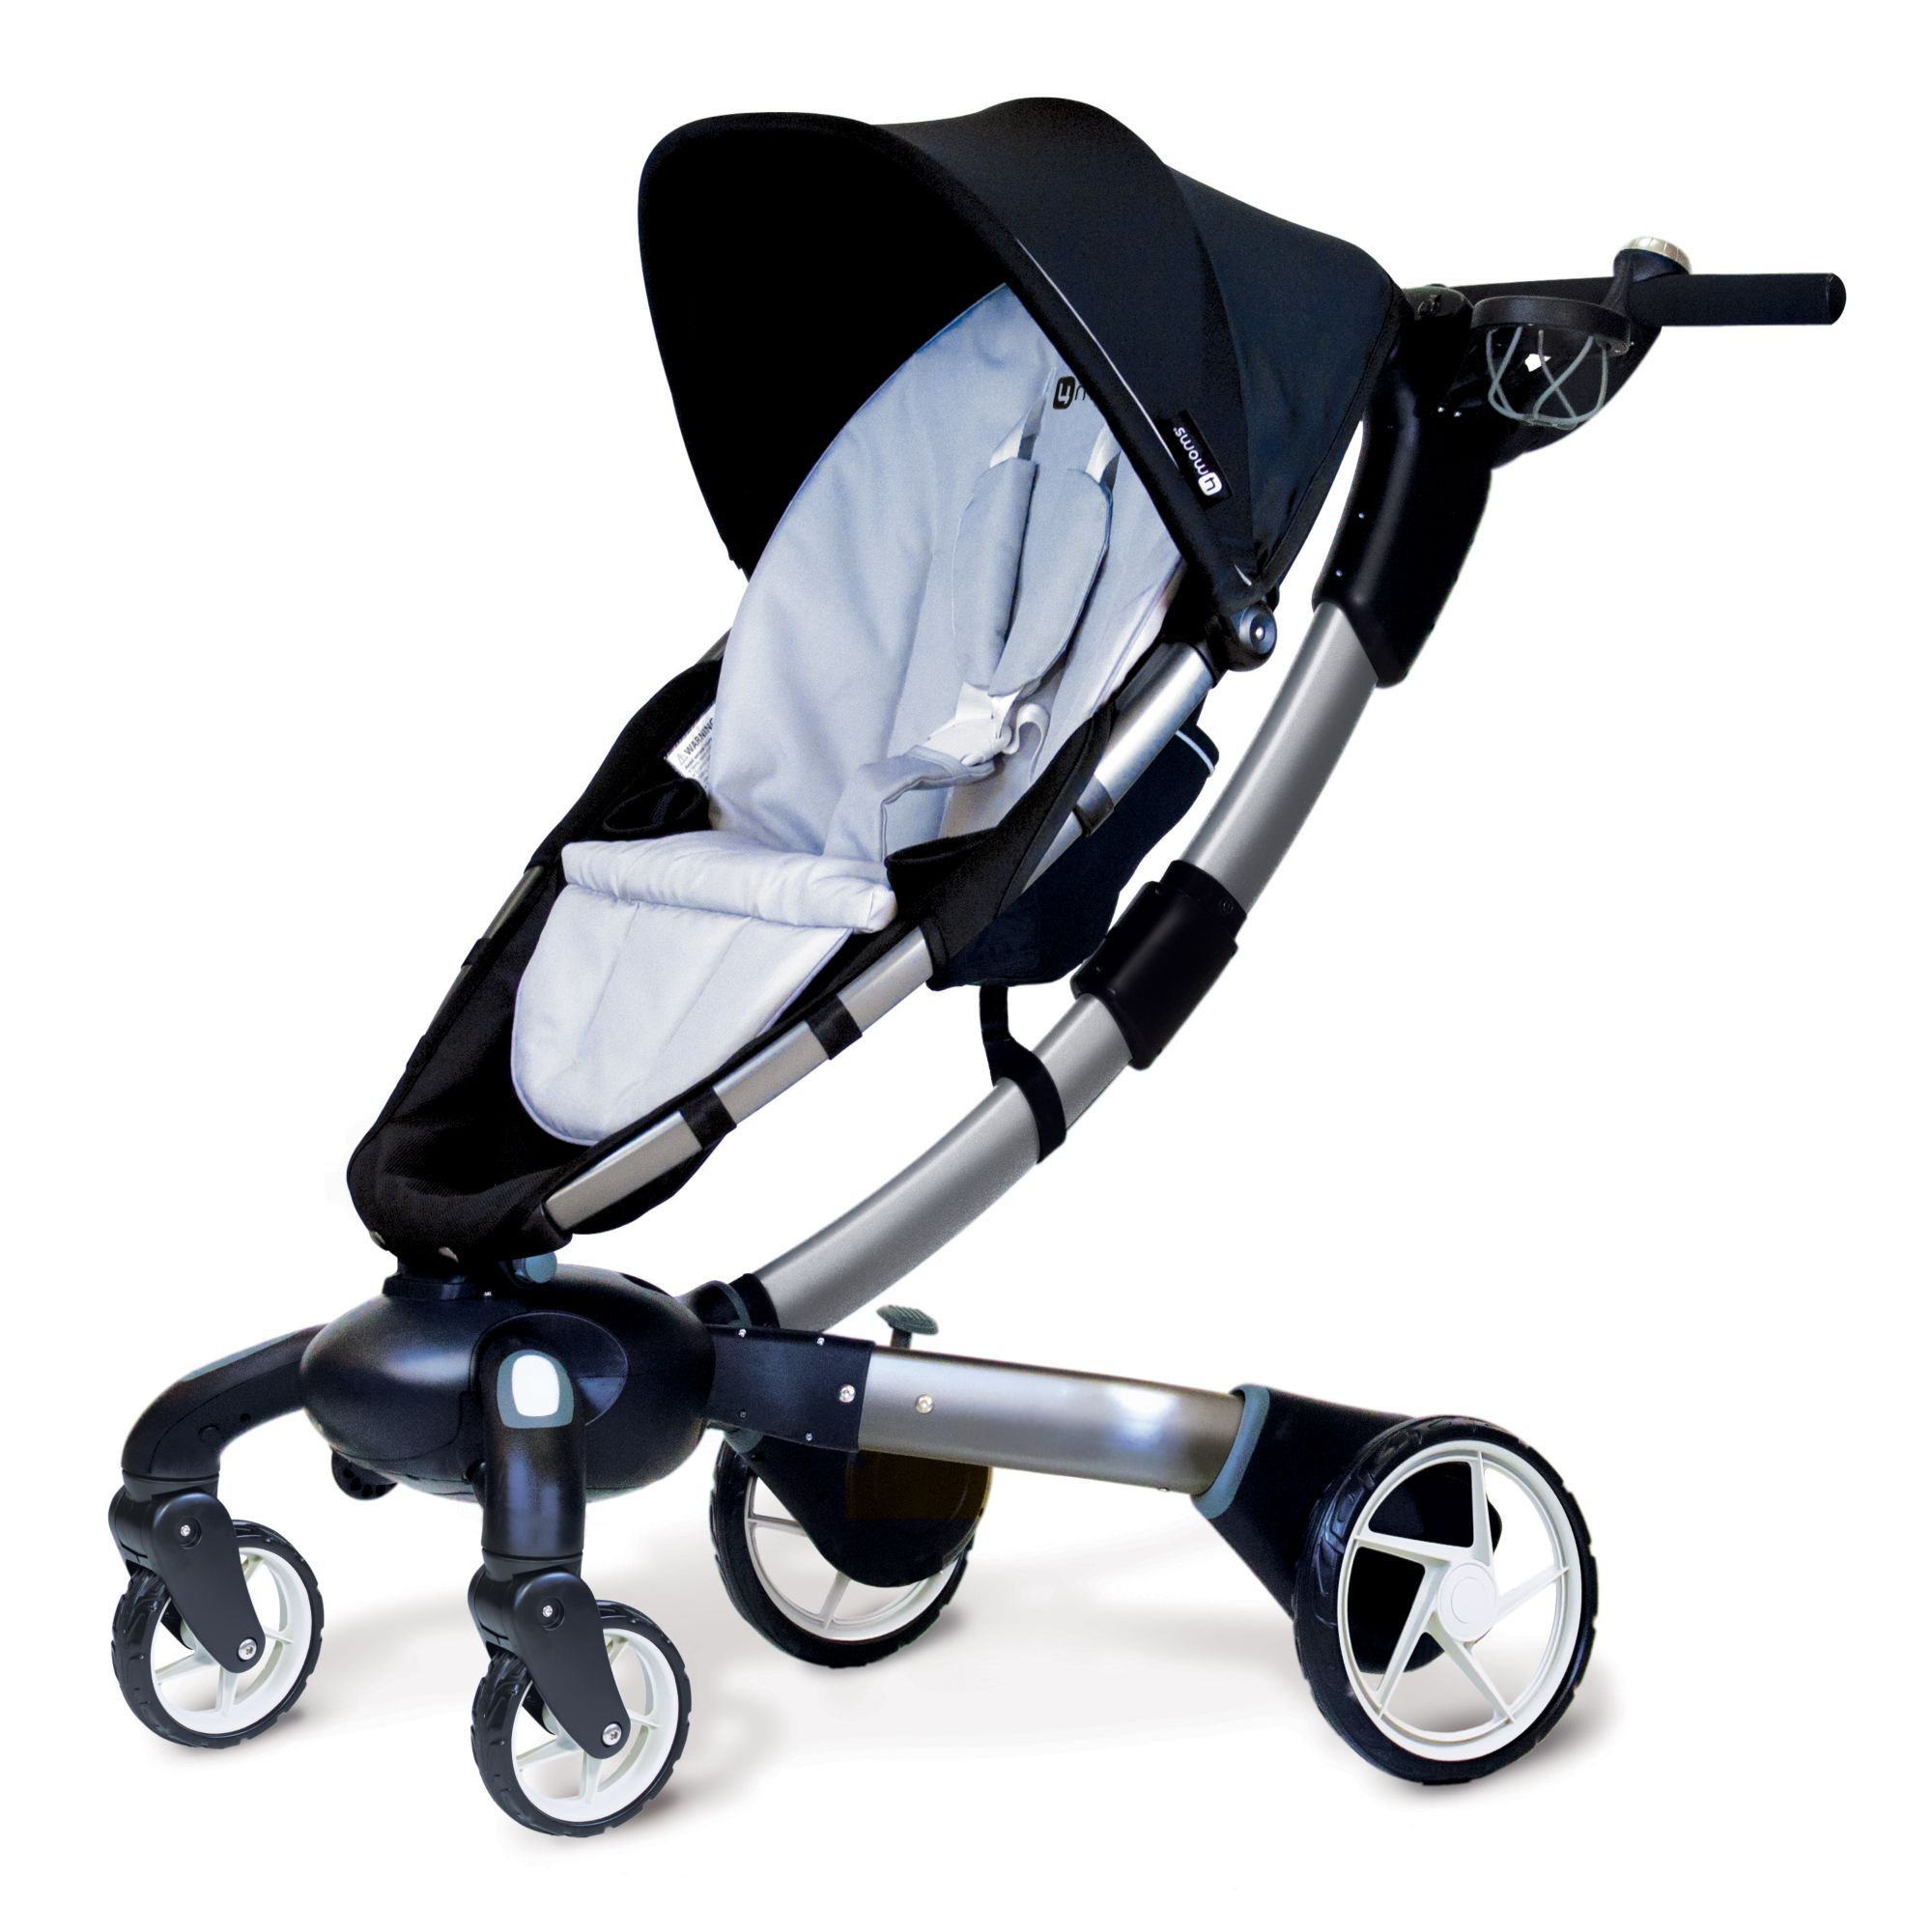 4Mums Origami Stroller - Silver